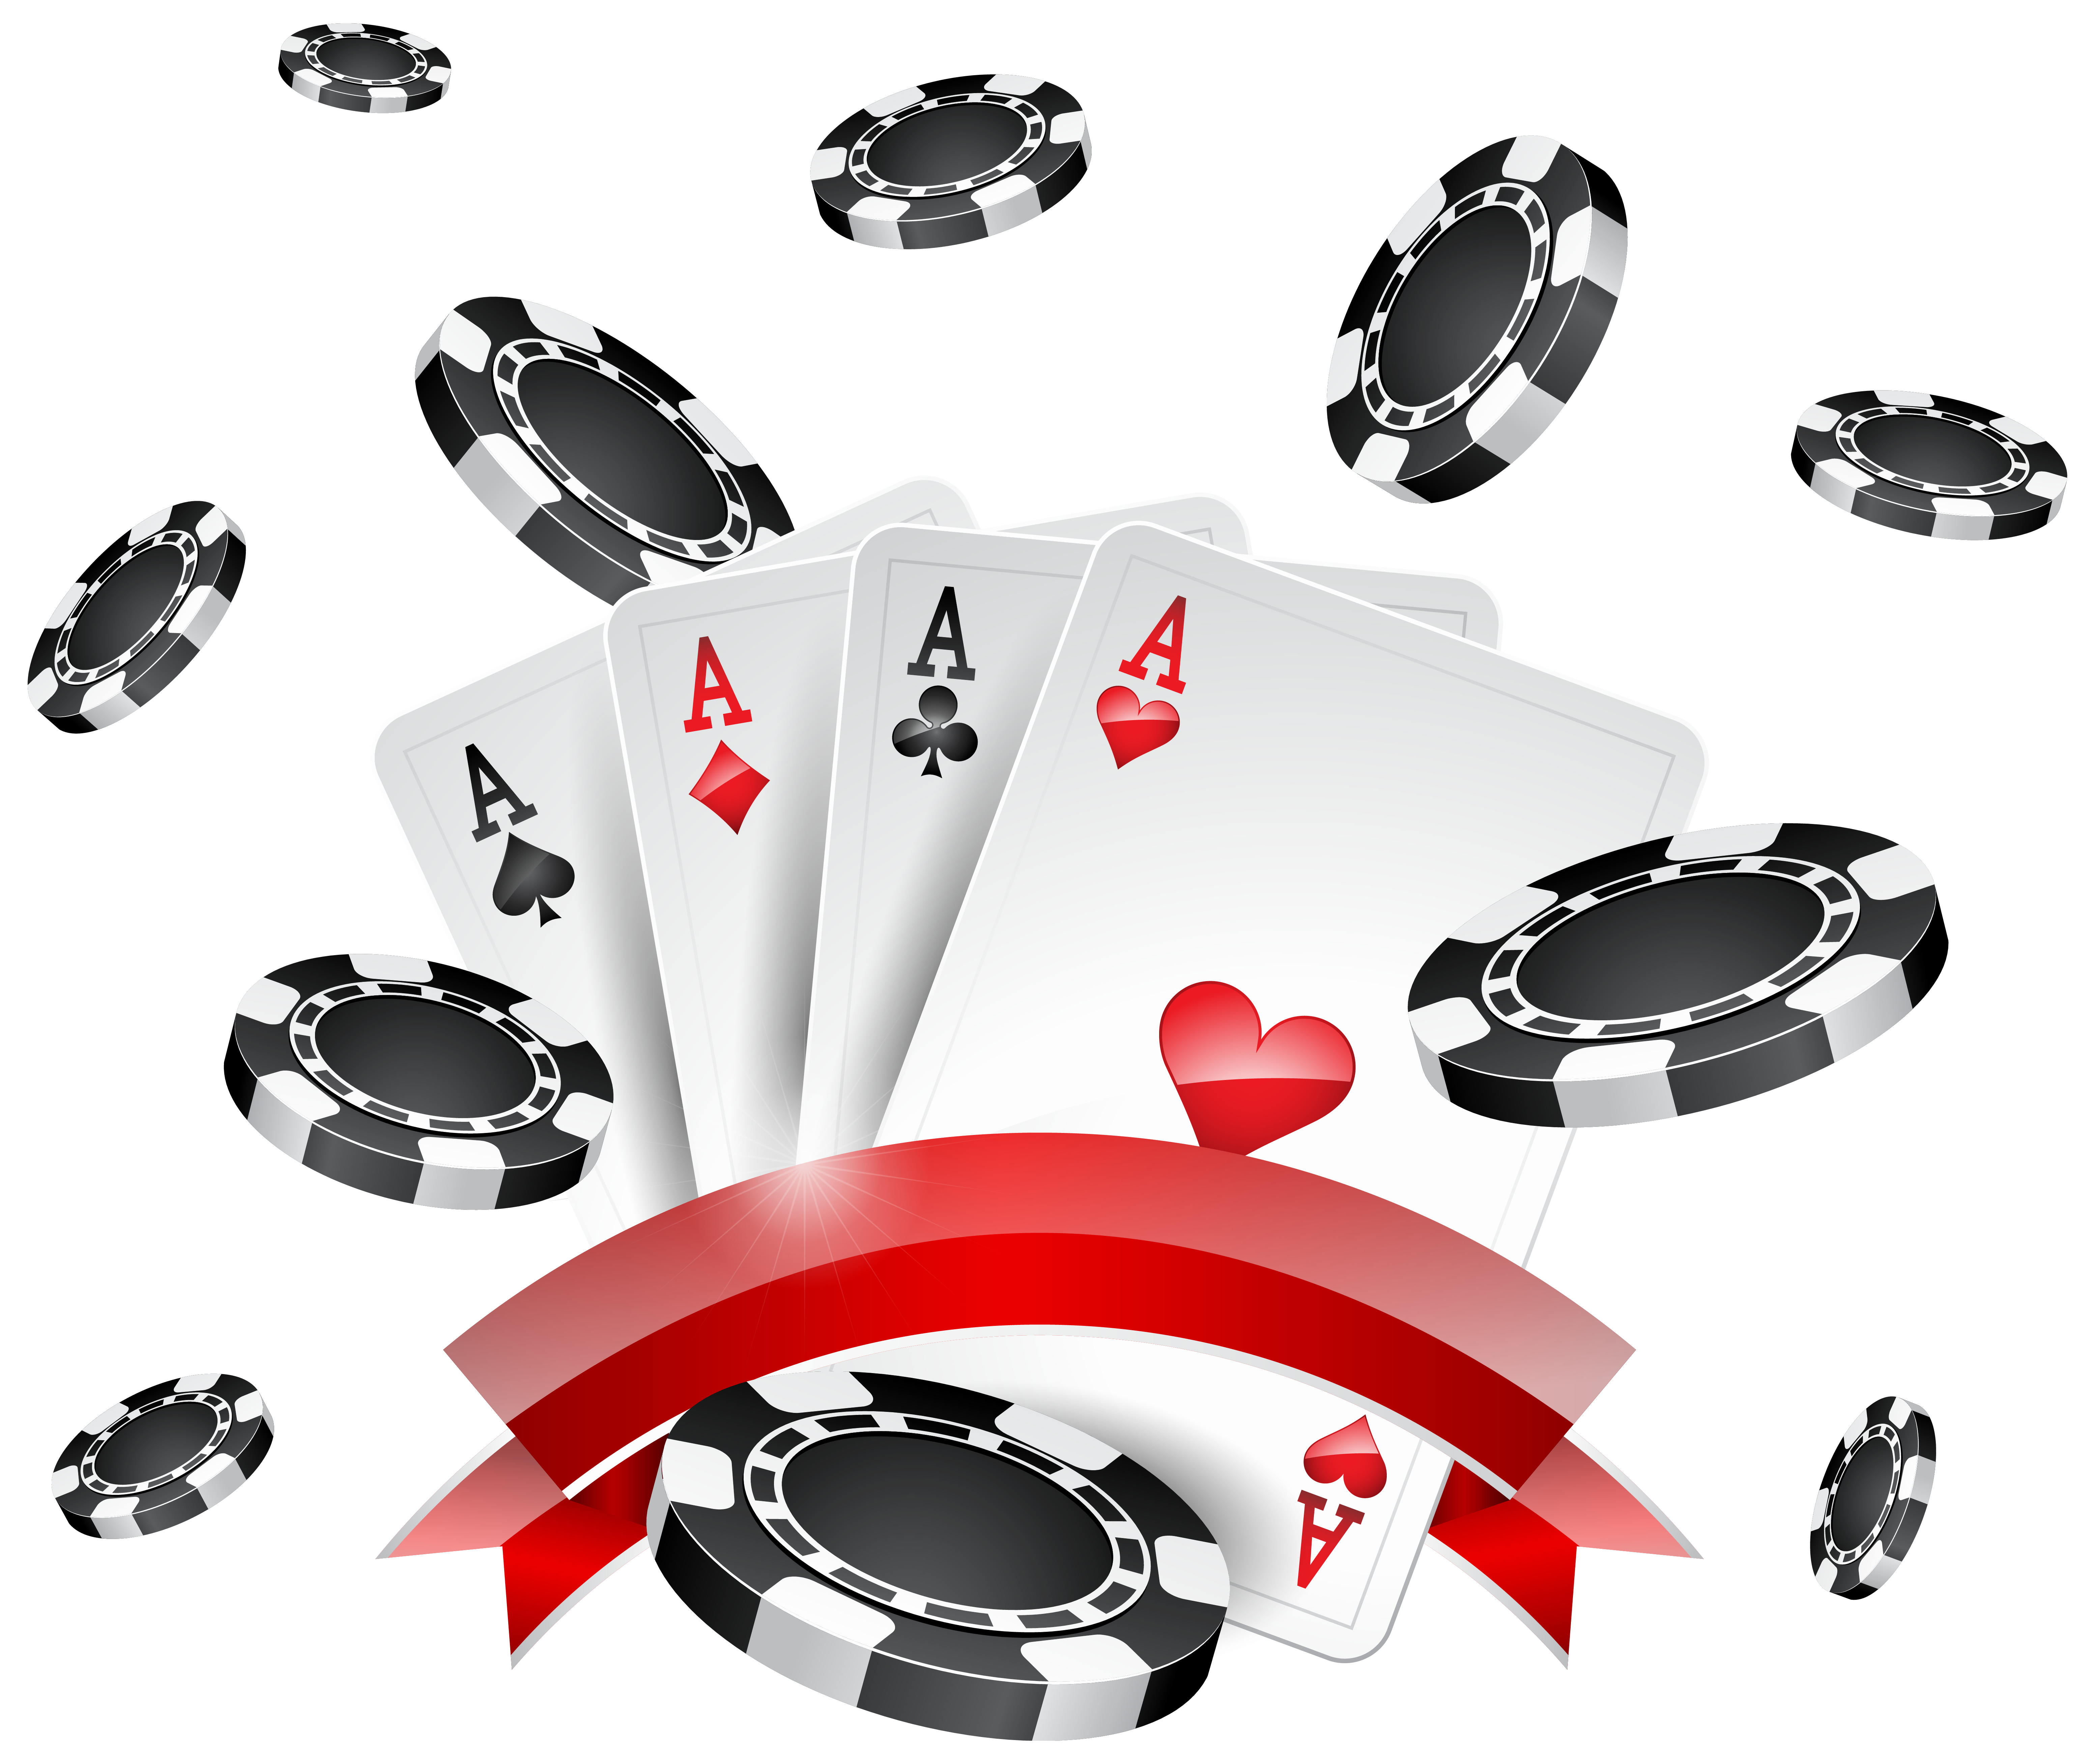 Casino clipart transparent. Chips and cards decoration